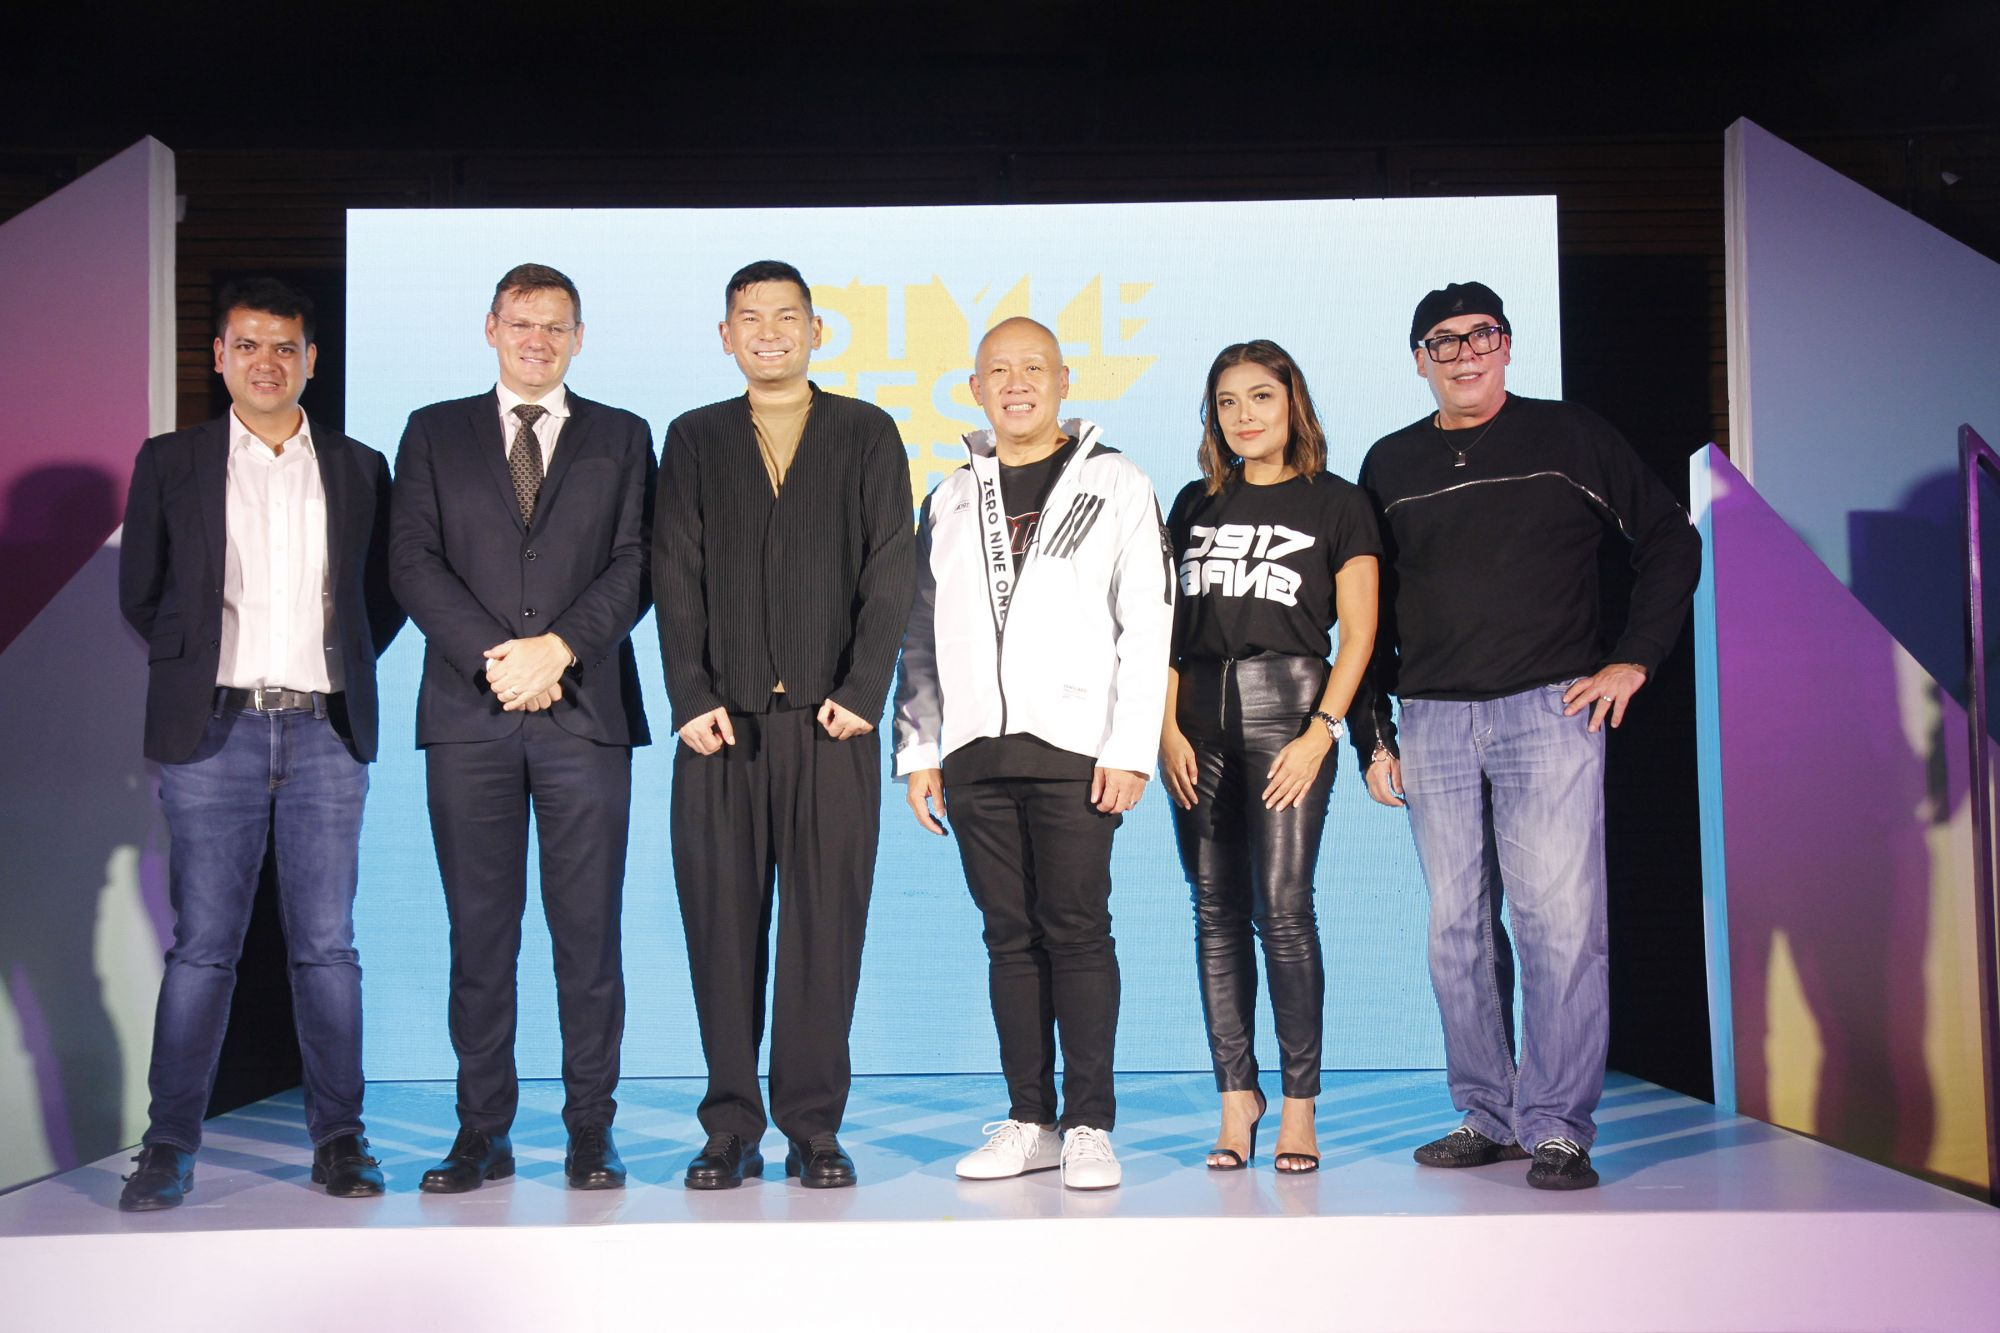 StyleFestPH 2019 Brings Together Fashion and Technology